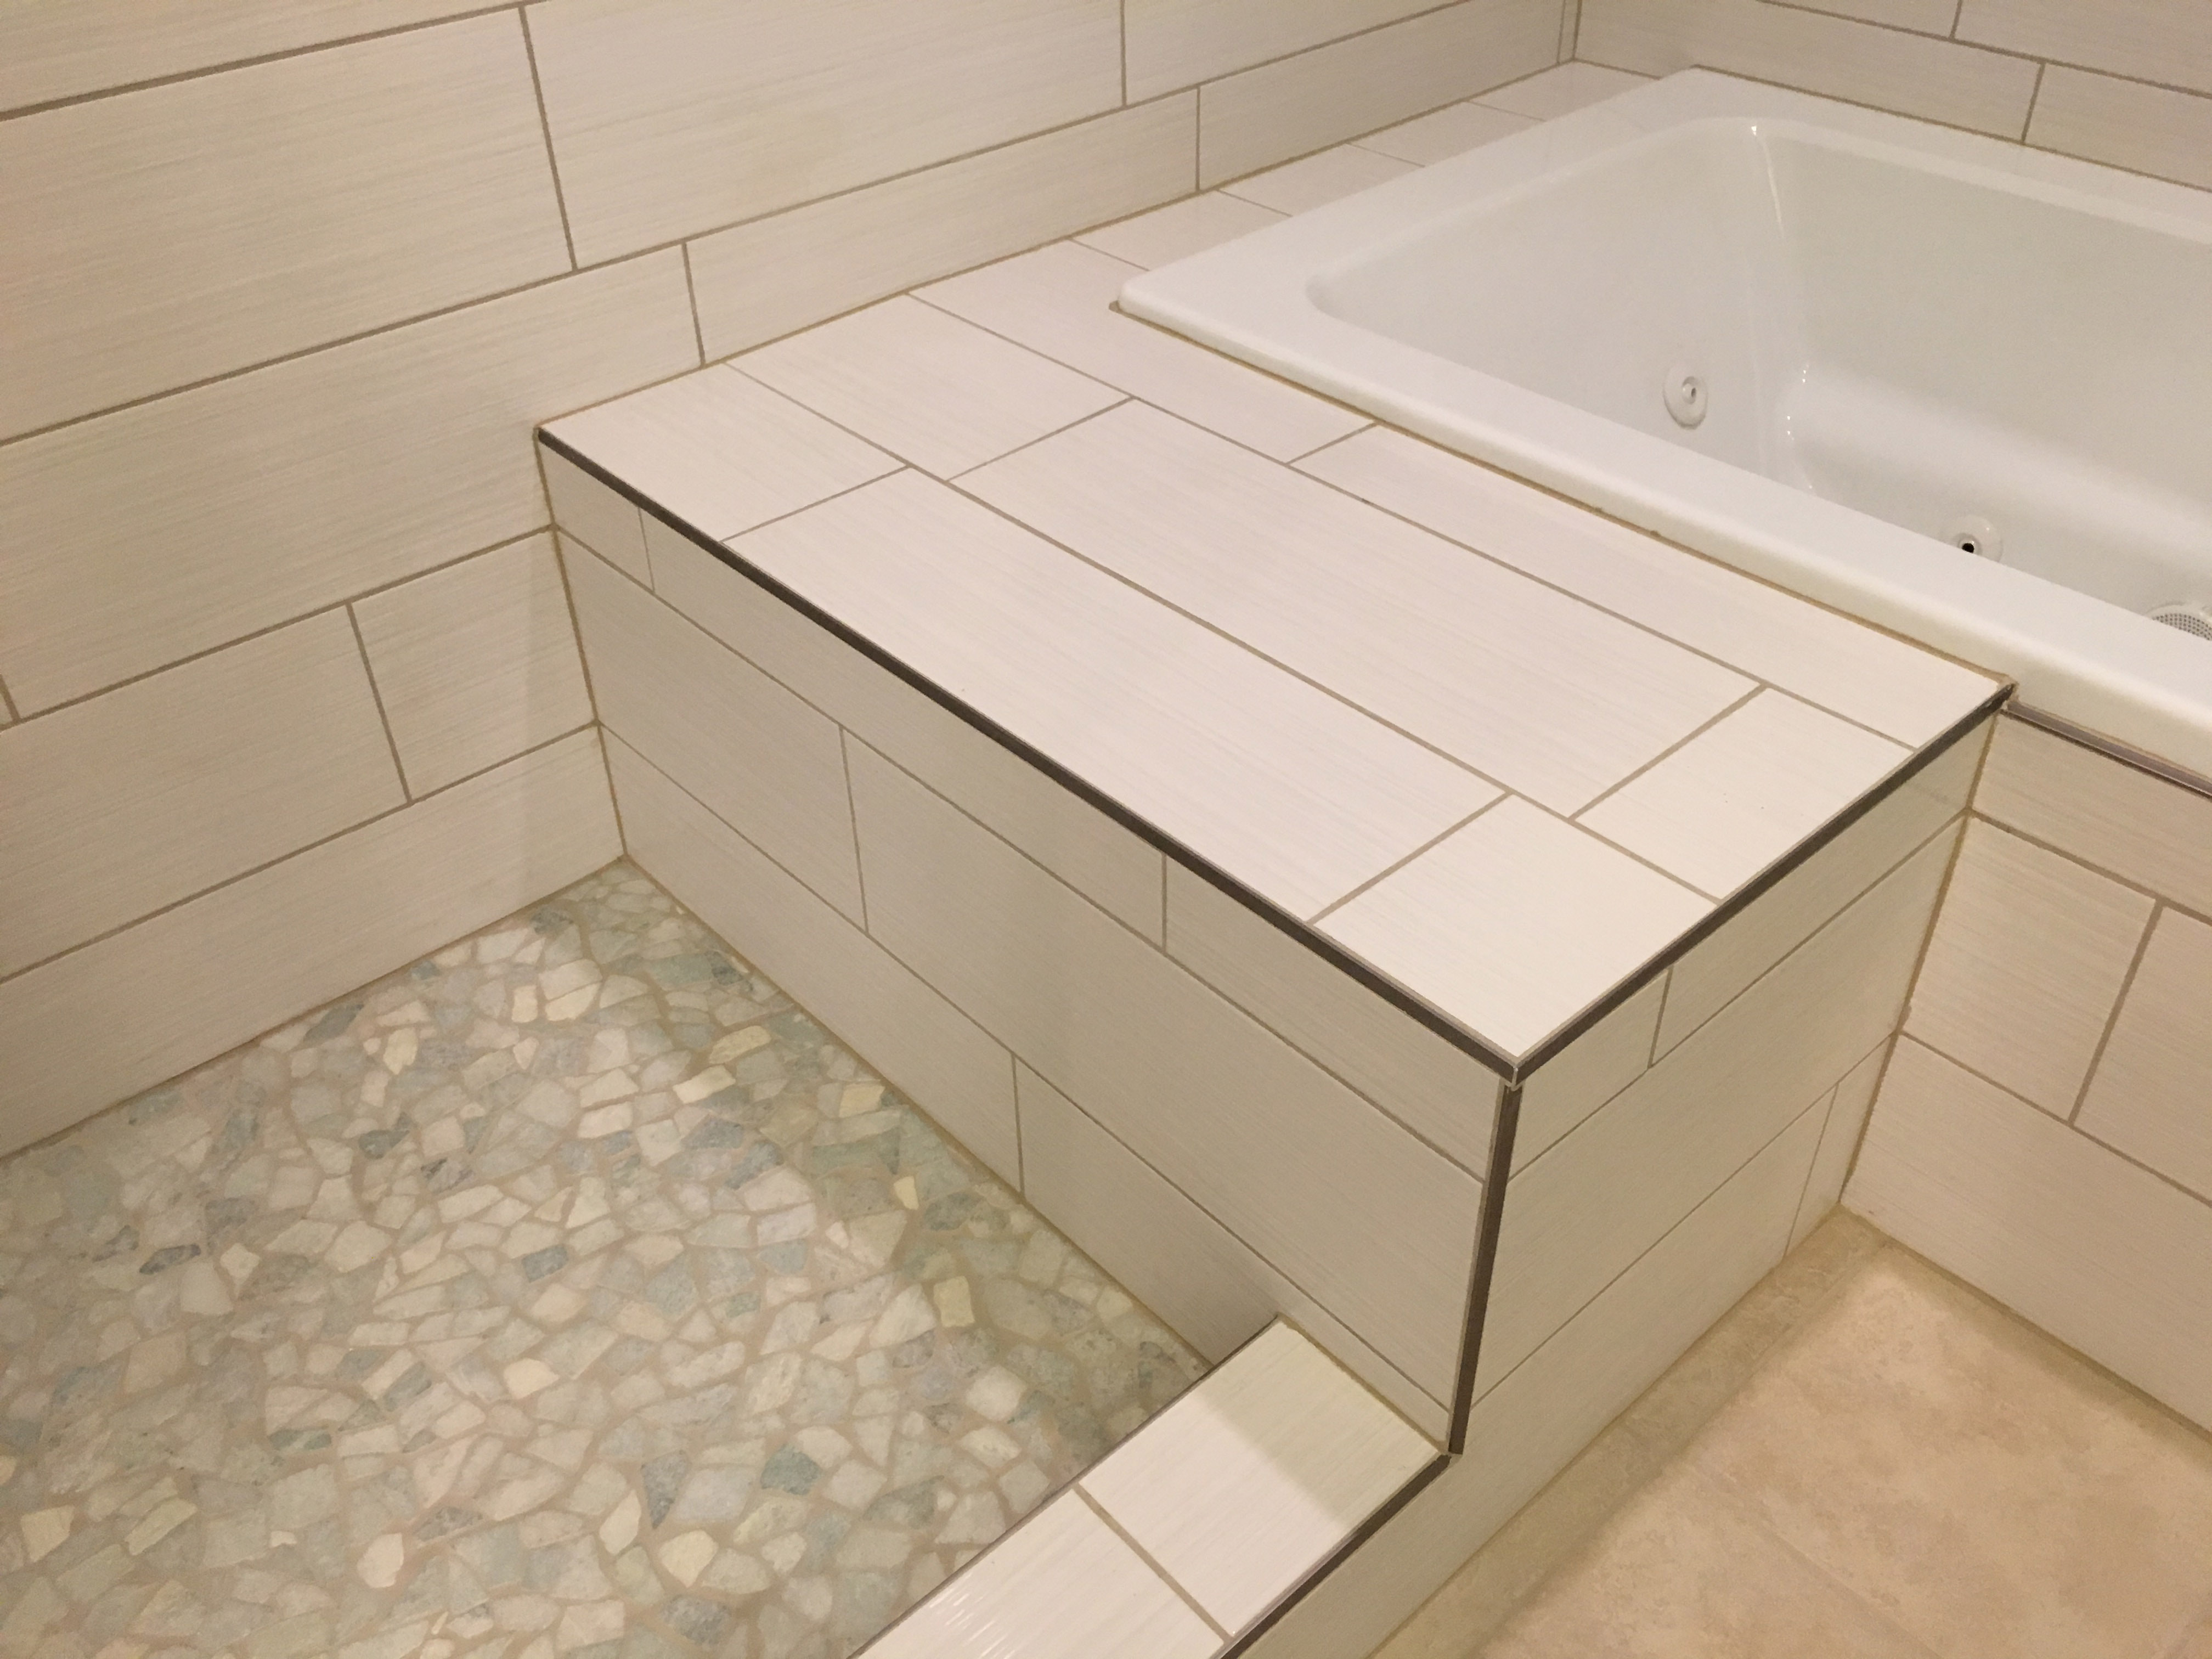 Inspired Remodeling Tile Sullivan Terre Haute Indiana Surrounding Areas Peter Bales Bathroom Remodeling Tile Shower Installation Contractor Bench Seat From Bathroom With Staggered Tile